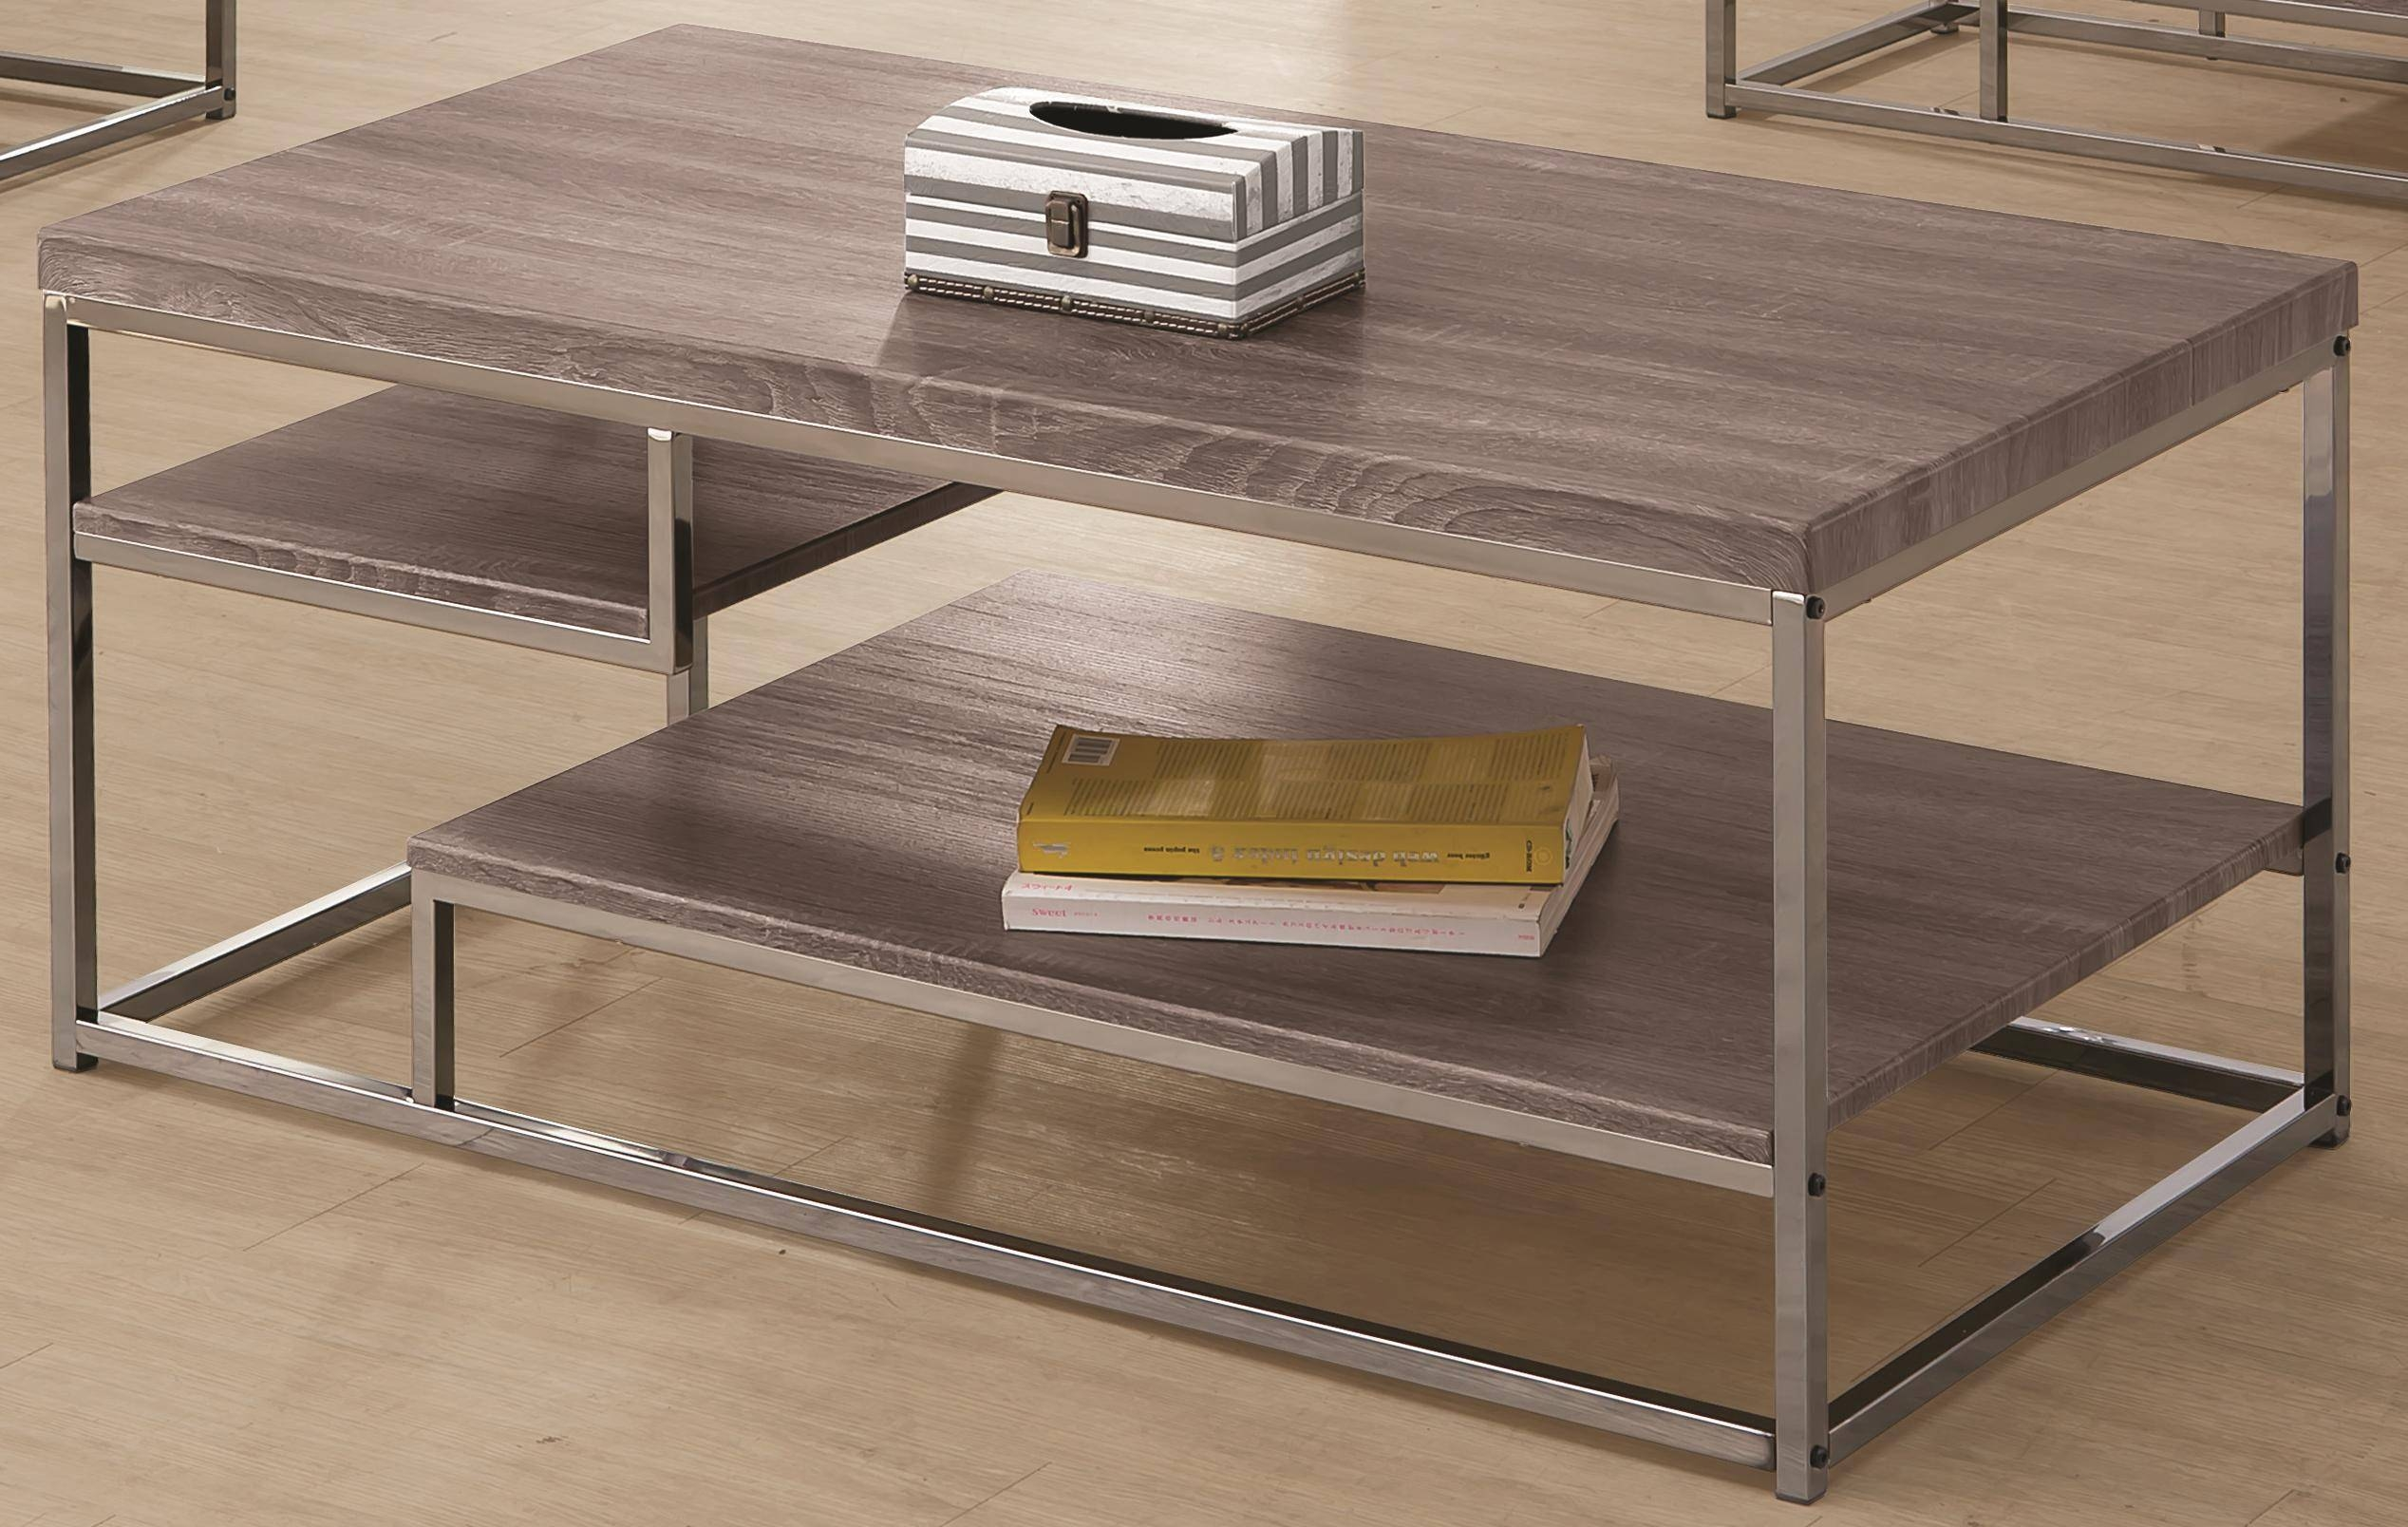 Coaster 7037 2 Shelf Coffee Table With Wood Top And Chrome Frame for Grey Coffee Tables (Image 9 of 30)